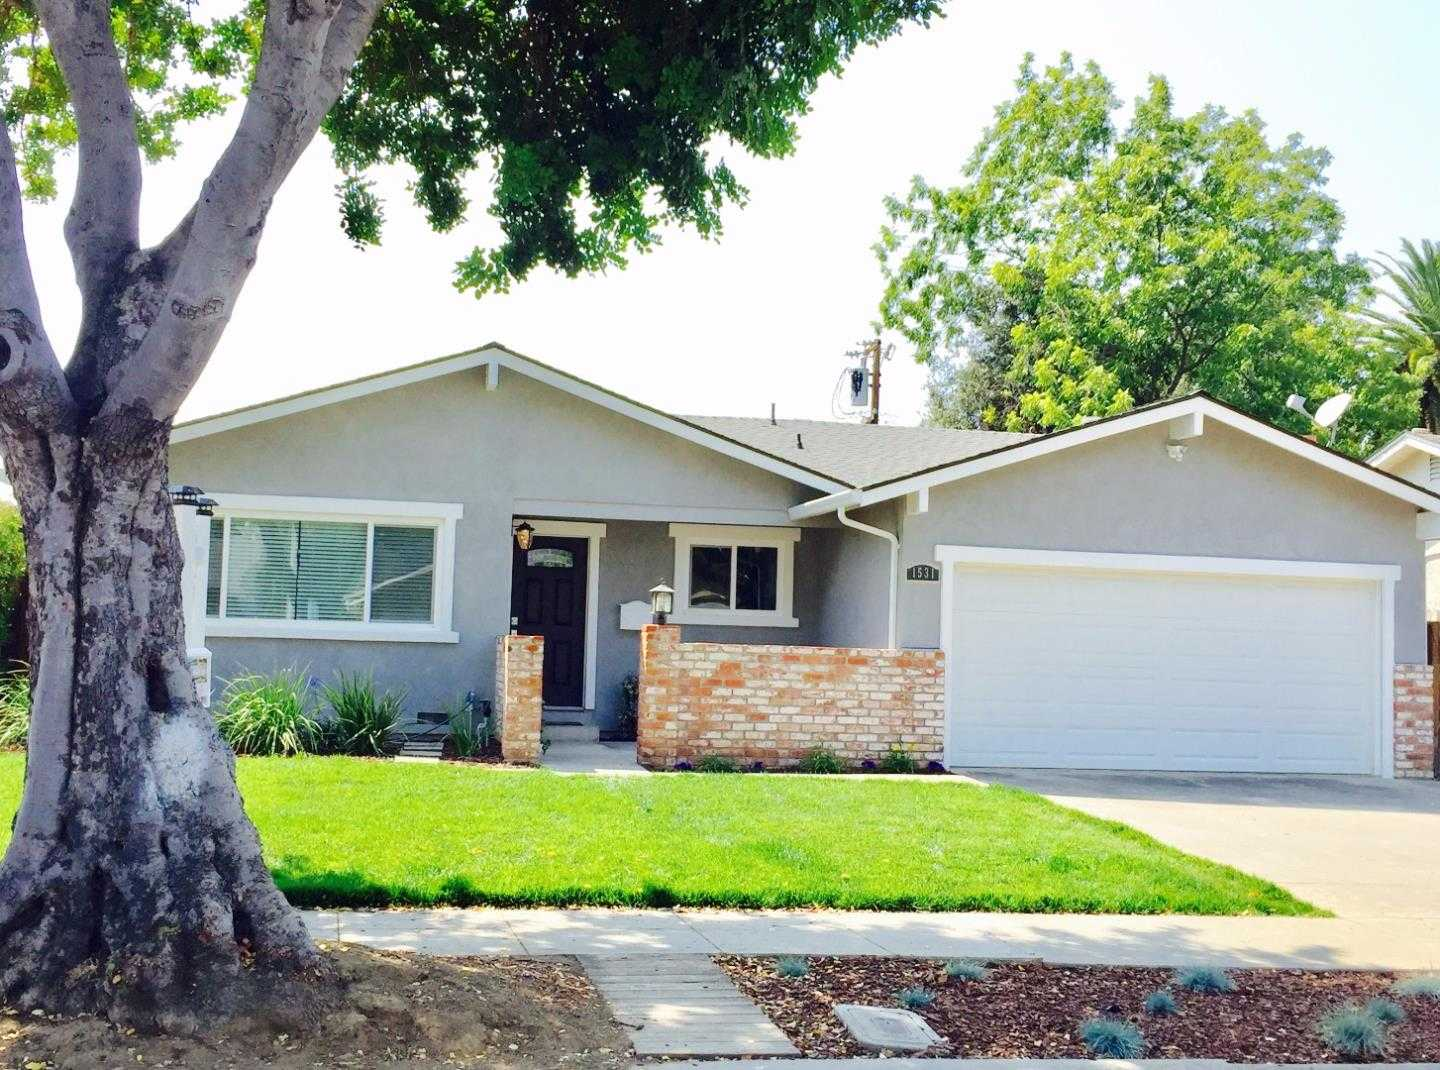 $1,748,000 - 3Br/2Ba -  for Sale in Sunnyvale